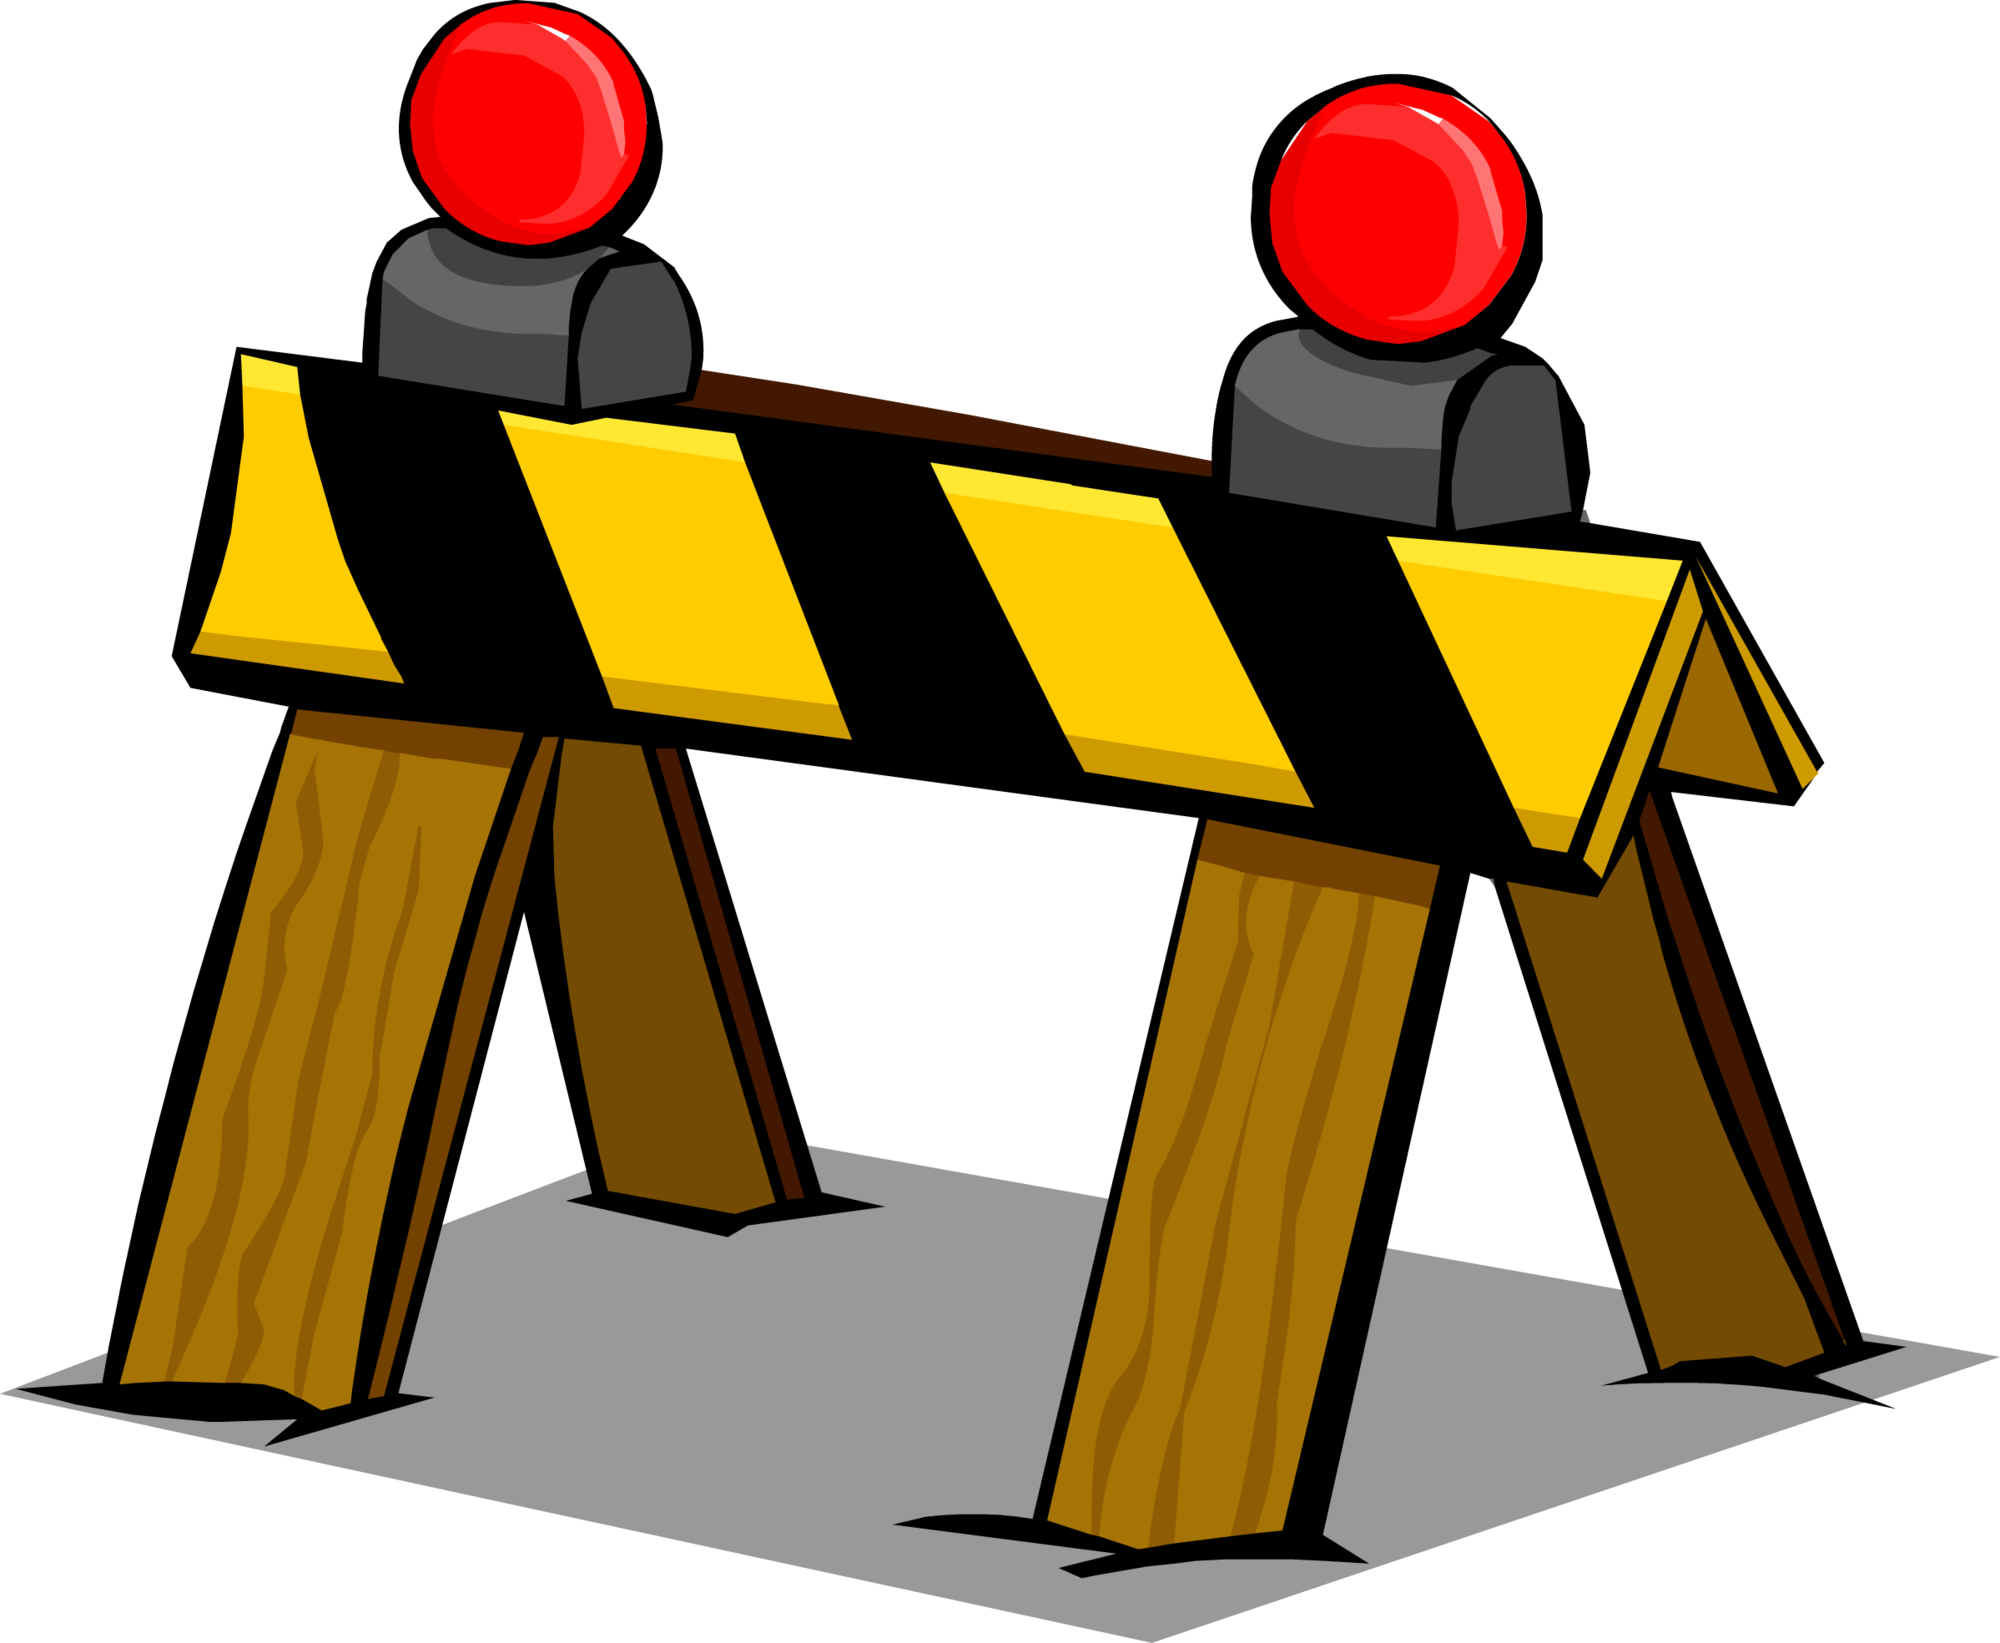 Construction clipart barrier. Club penguin wiki fandom